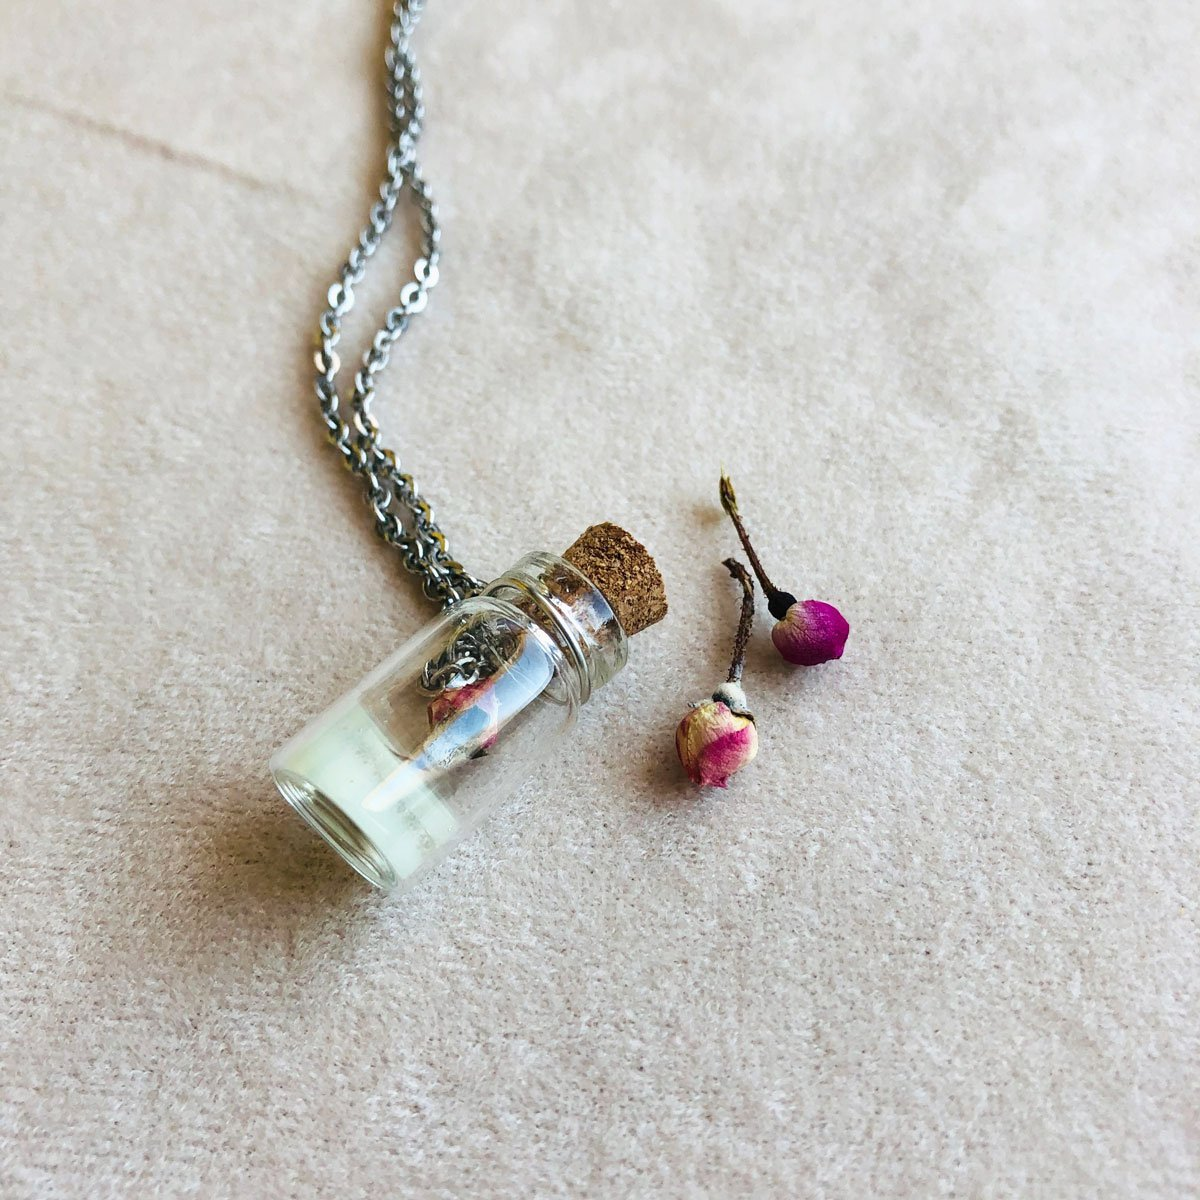 Spring | Mini rose in a glass bottle